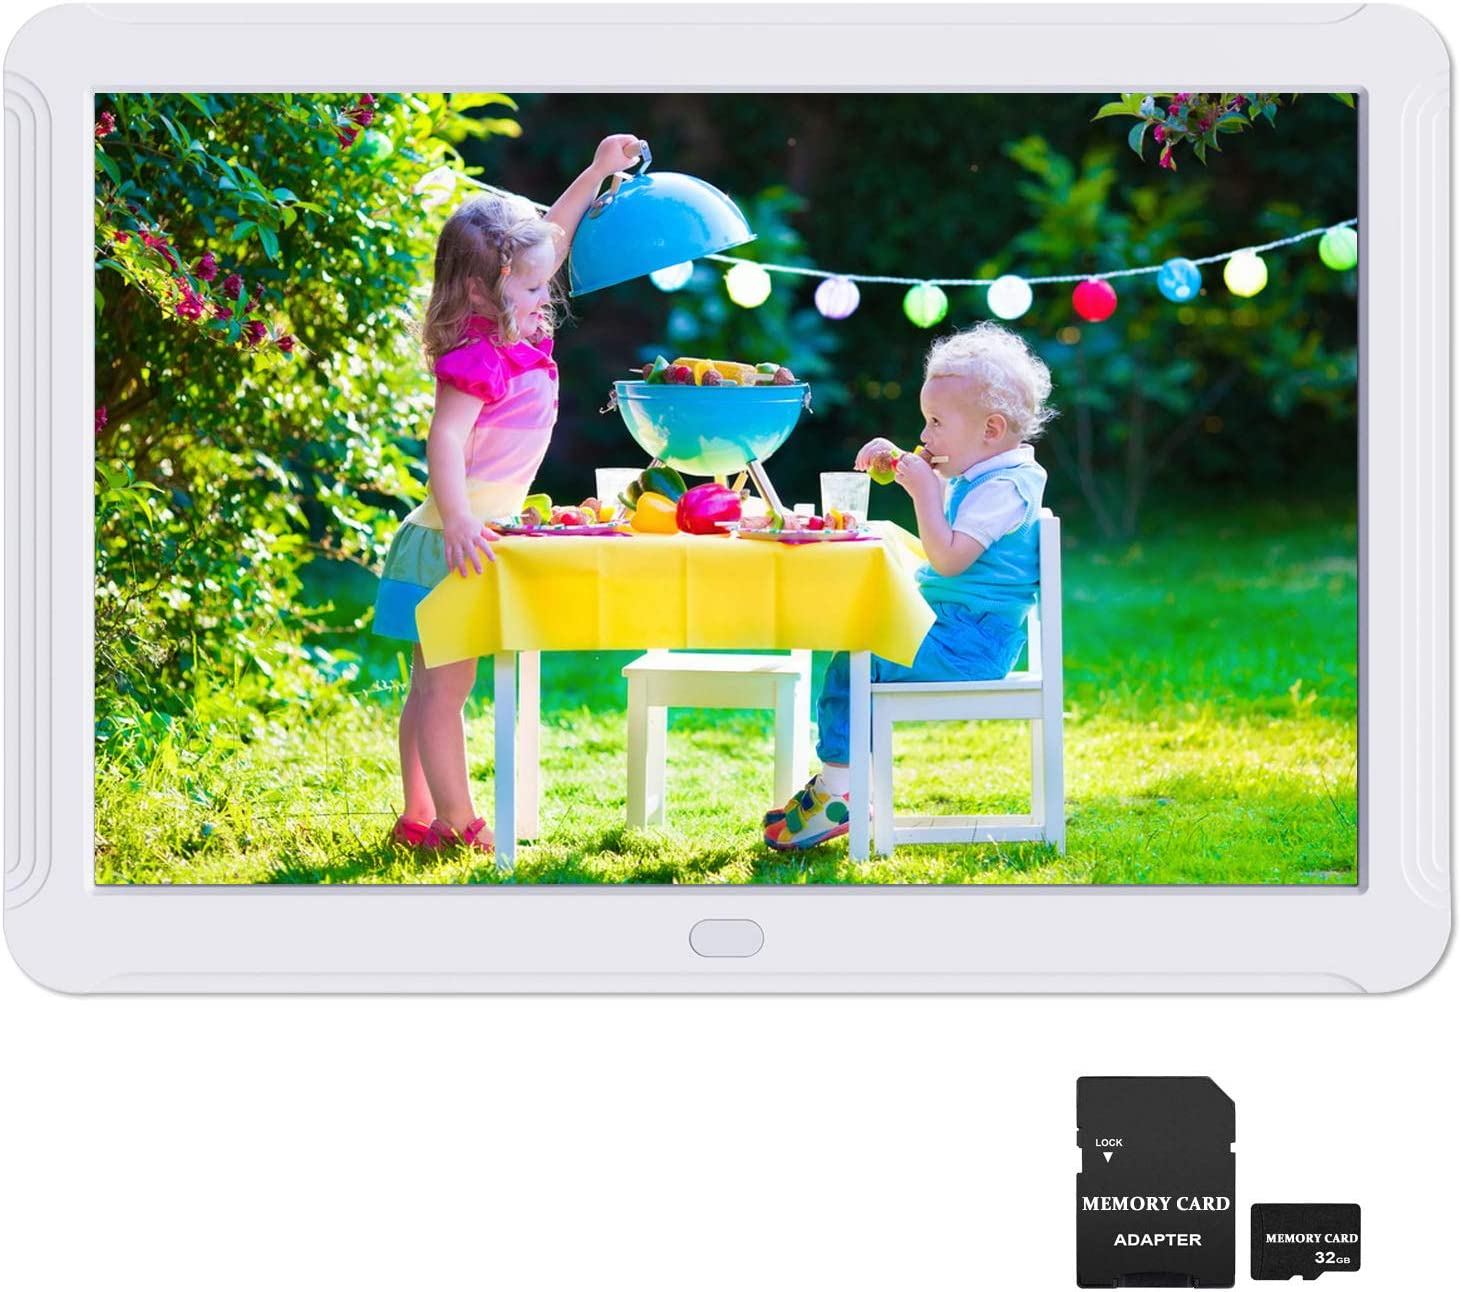 1080P Video Frame Background Music 12 Inch Digital Photo Frame 1920x1080 Motion Detection IPS Screen 16:9 Auto Turn On//Off Auto Play Photo Auto Rotate Include 32GB SD Card